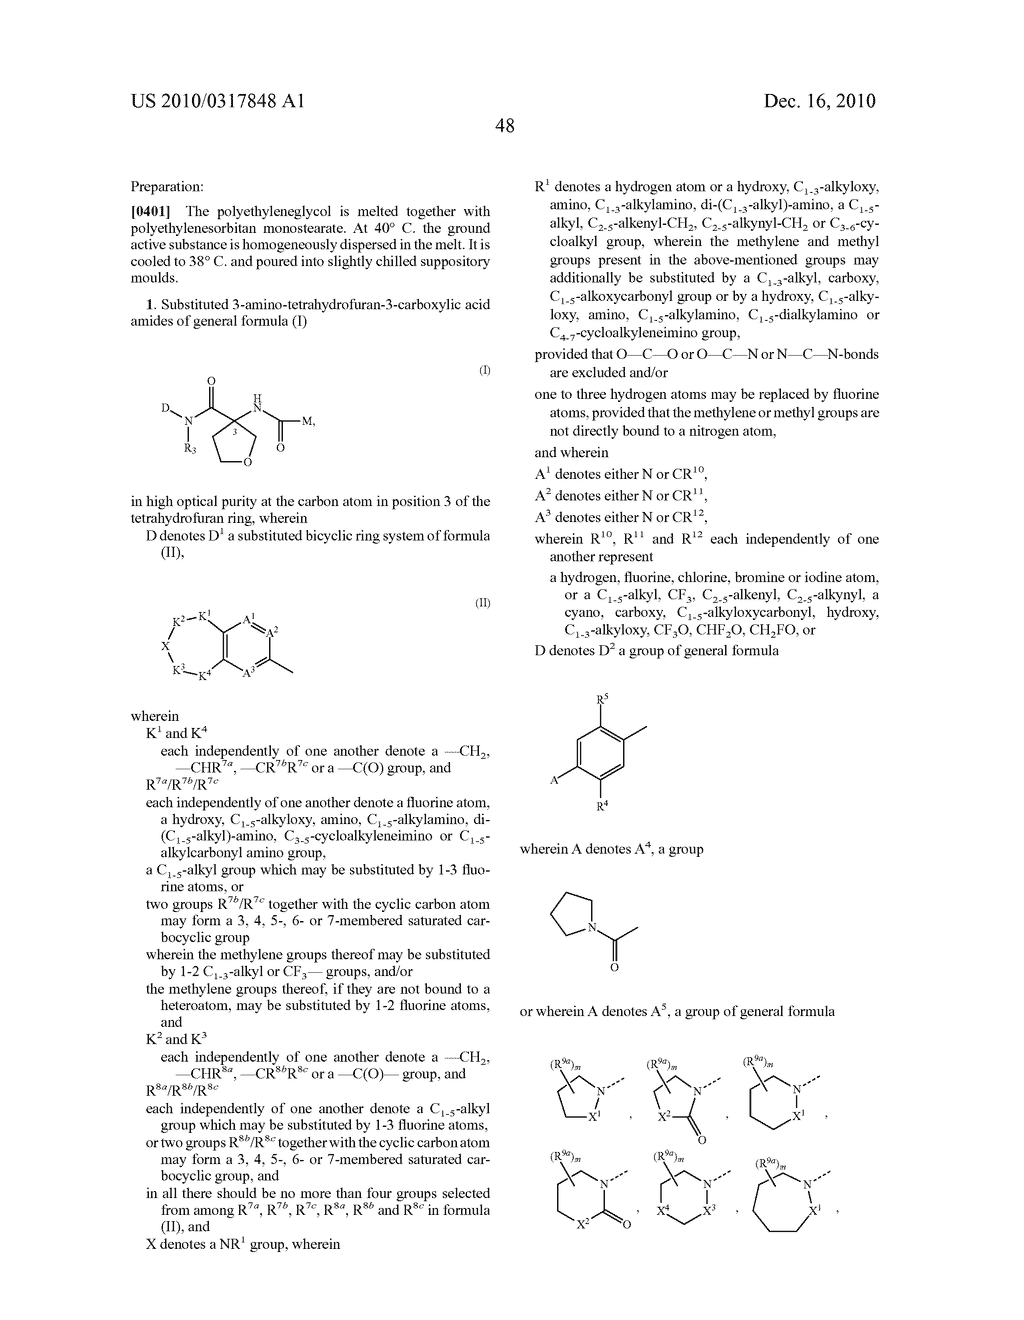 PROCESS FOR THE SYNTHESIS OF DERIVATIVES OF 3-AMINO-TETRAHYDROFURAN-3-CARBOXYLIC ACID AND USE THEREOF AS MEDICAMENTS - diagram, schematic, and image 53